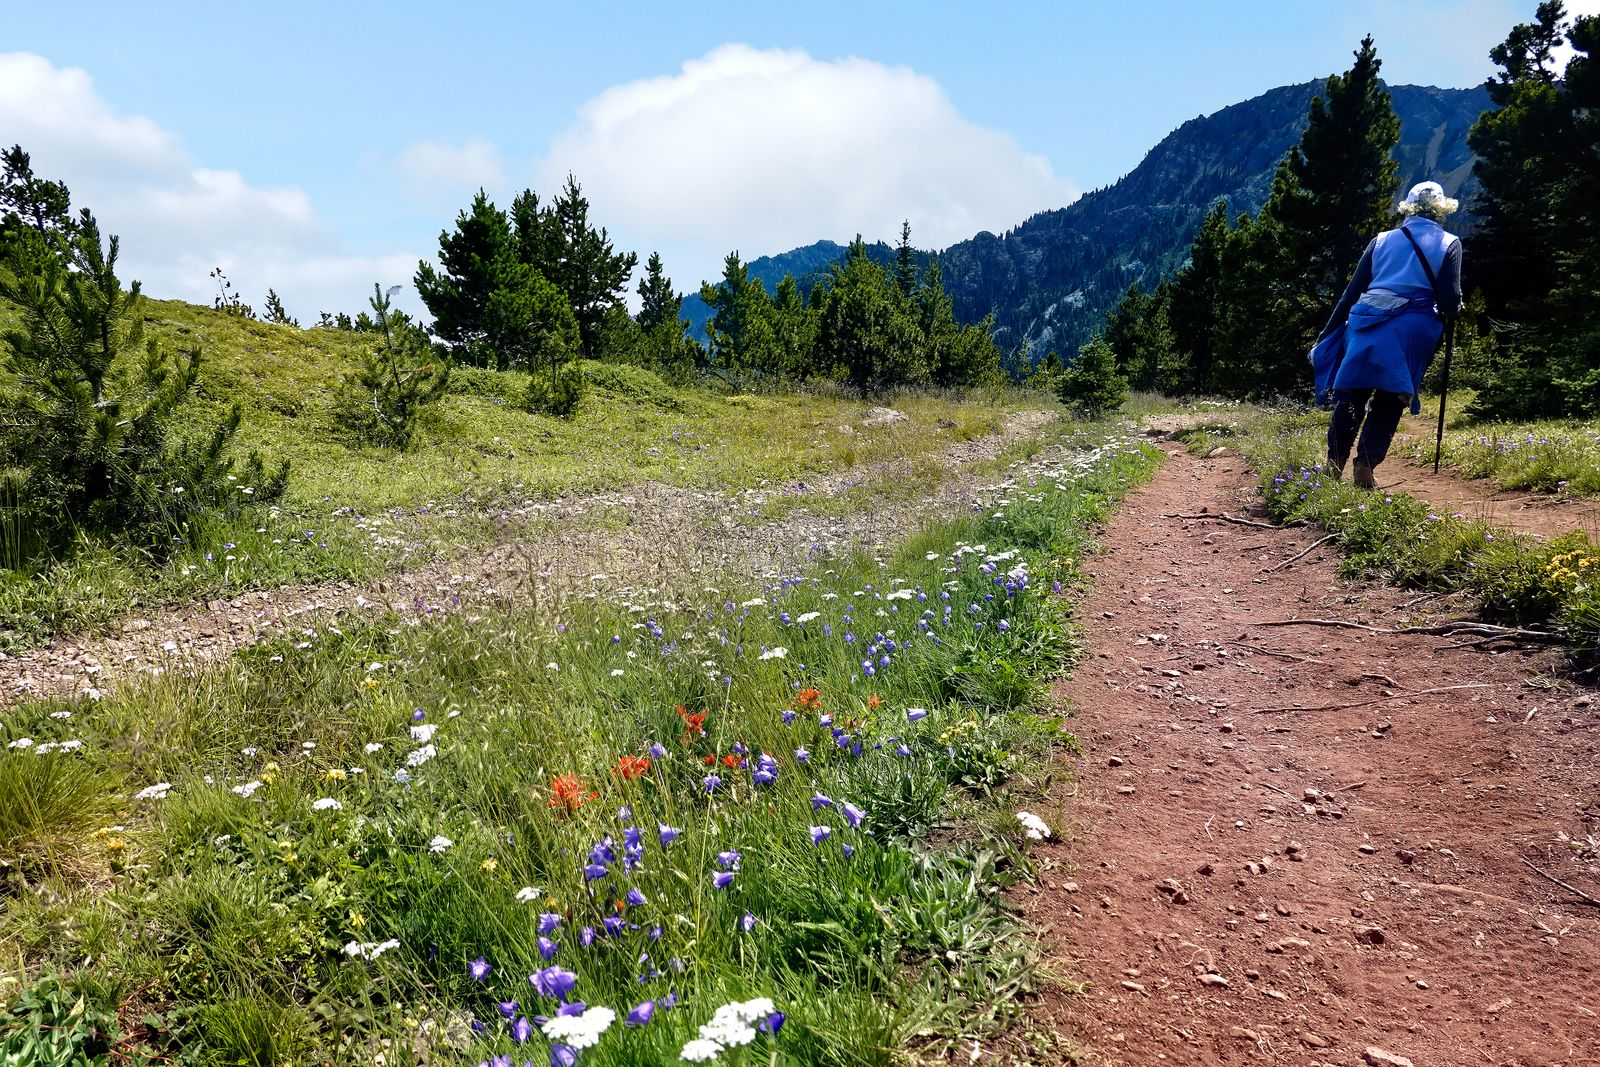 Note the flowers all along the trail